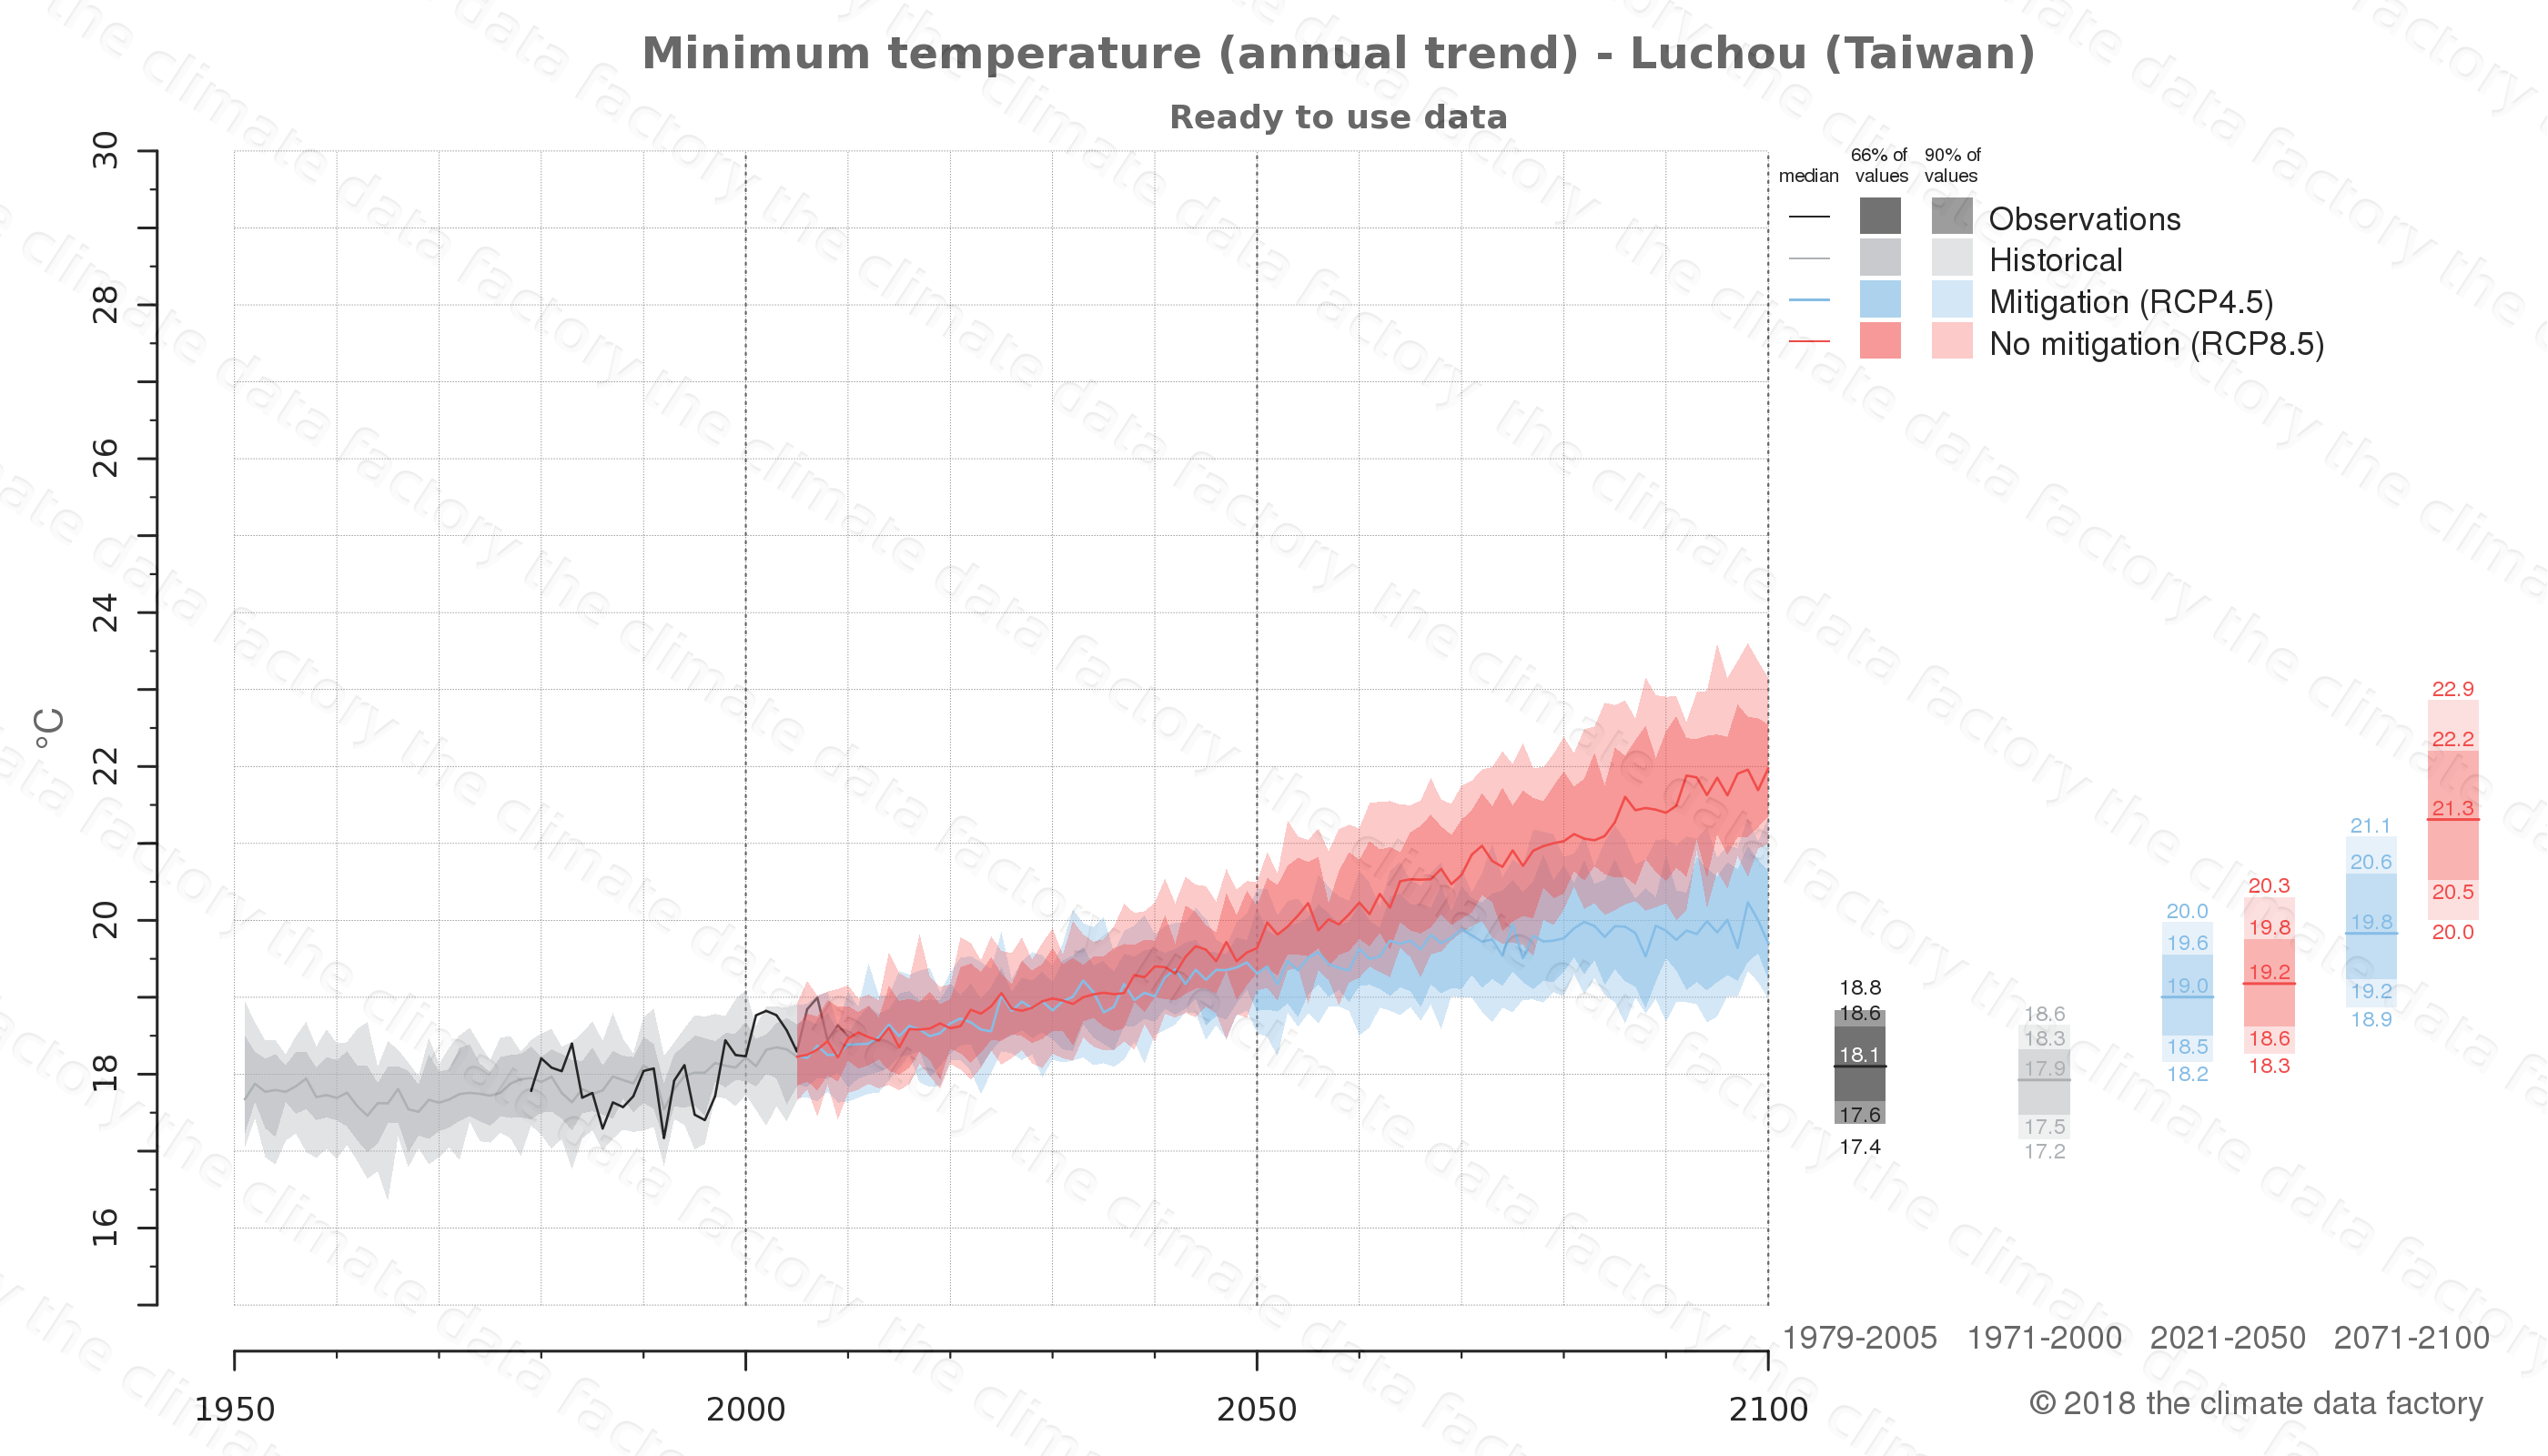 climate change data policy adaptation climate graph city data minimum-temperature luchou taiwan